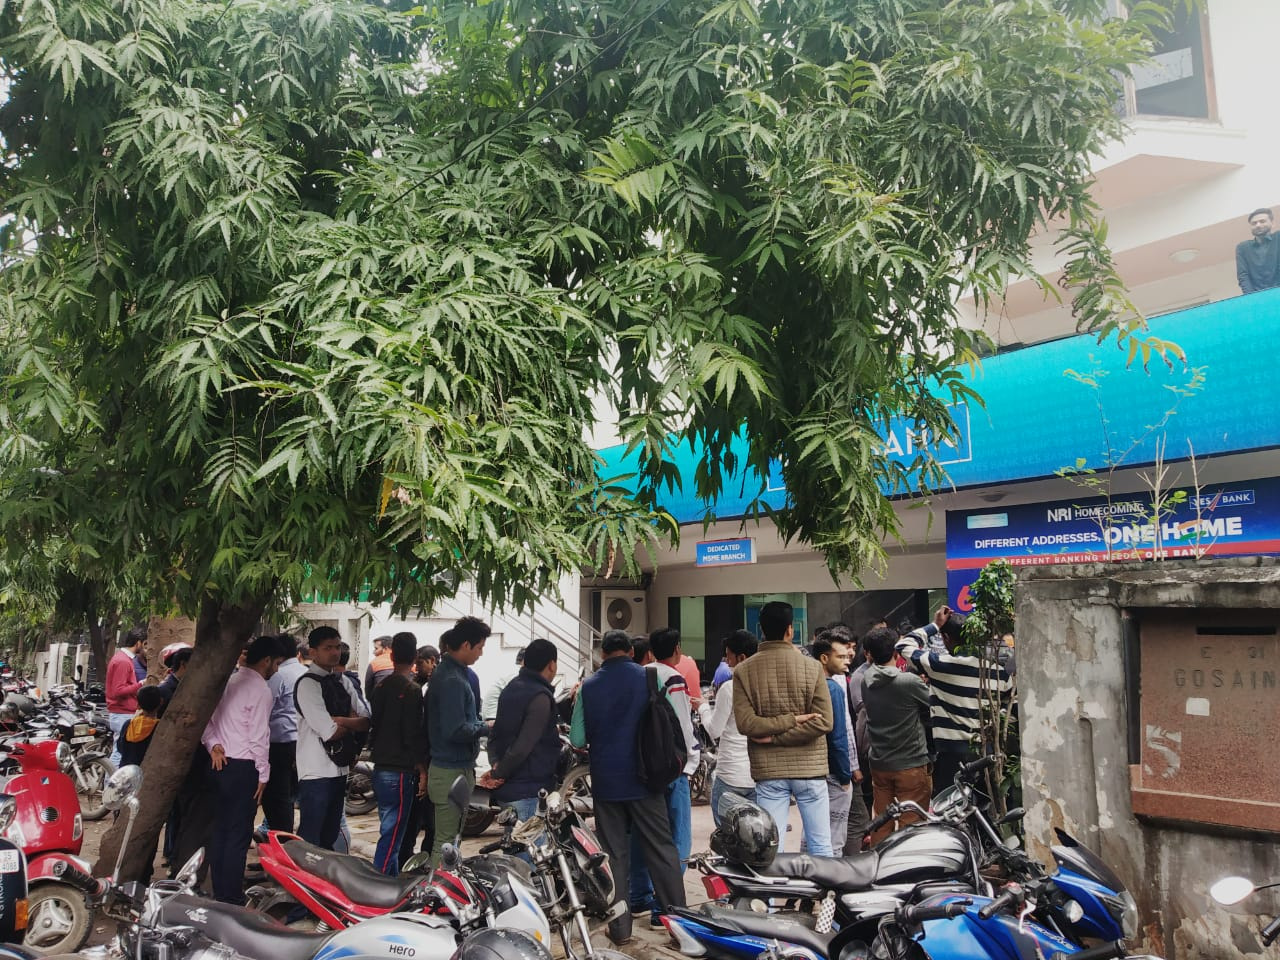 Day Two: Yes Bank Depositors Scramble for Cash, Most ATMs Run Dry